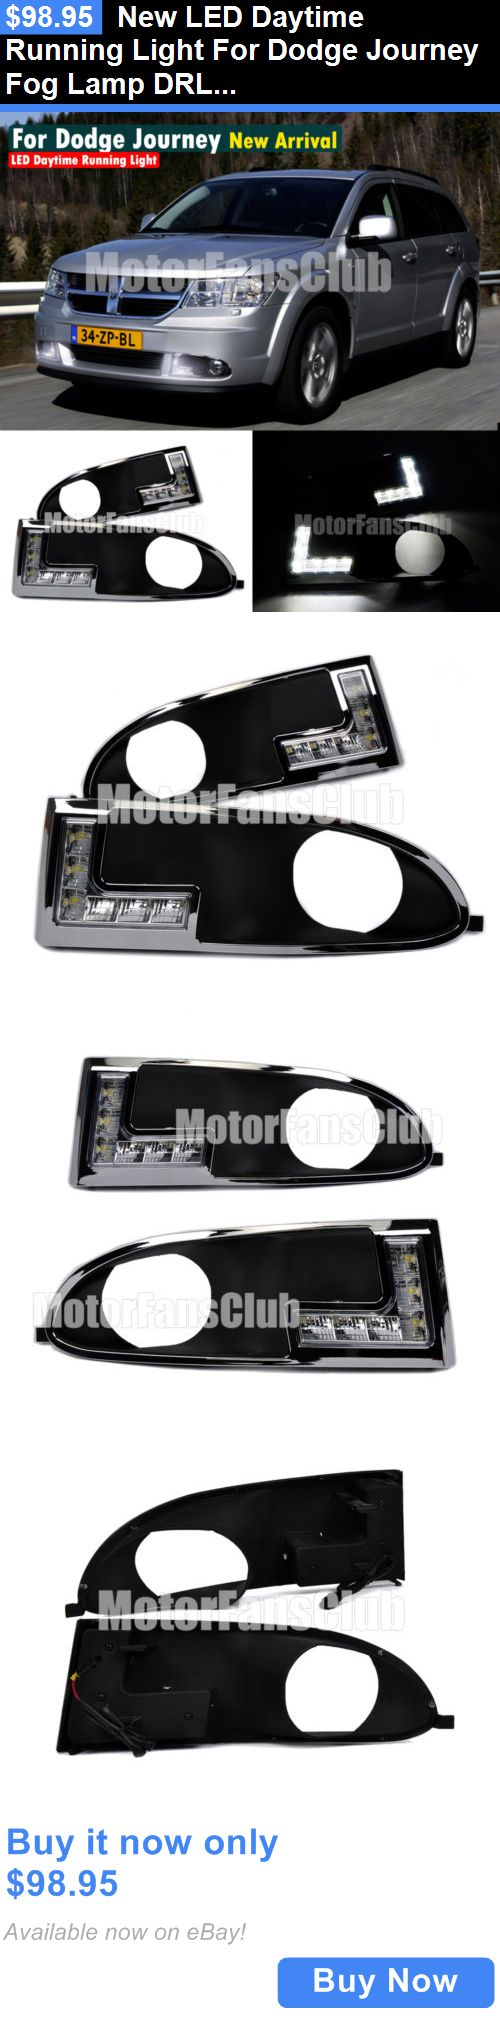 Motors Parts And Accessories: New Led Daytime Running Light For Dodge Journey Fog Lamp Drl 2009 2010 2011 2012 BUY IT NOW ONLY: $98.95